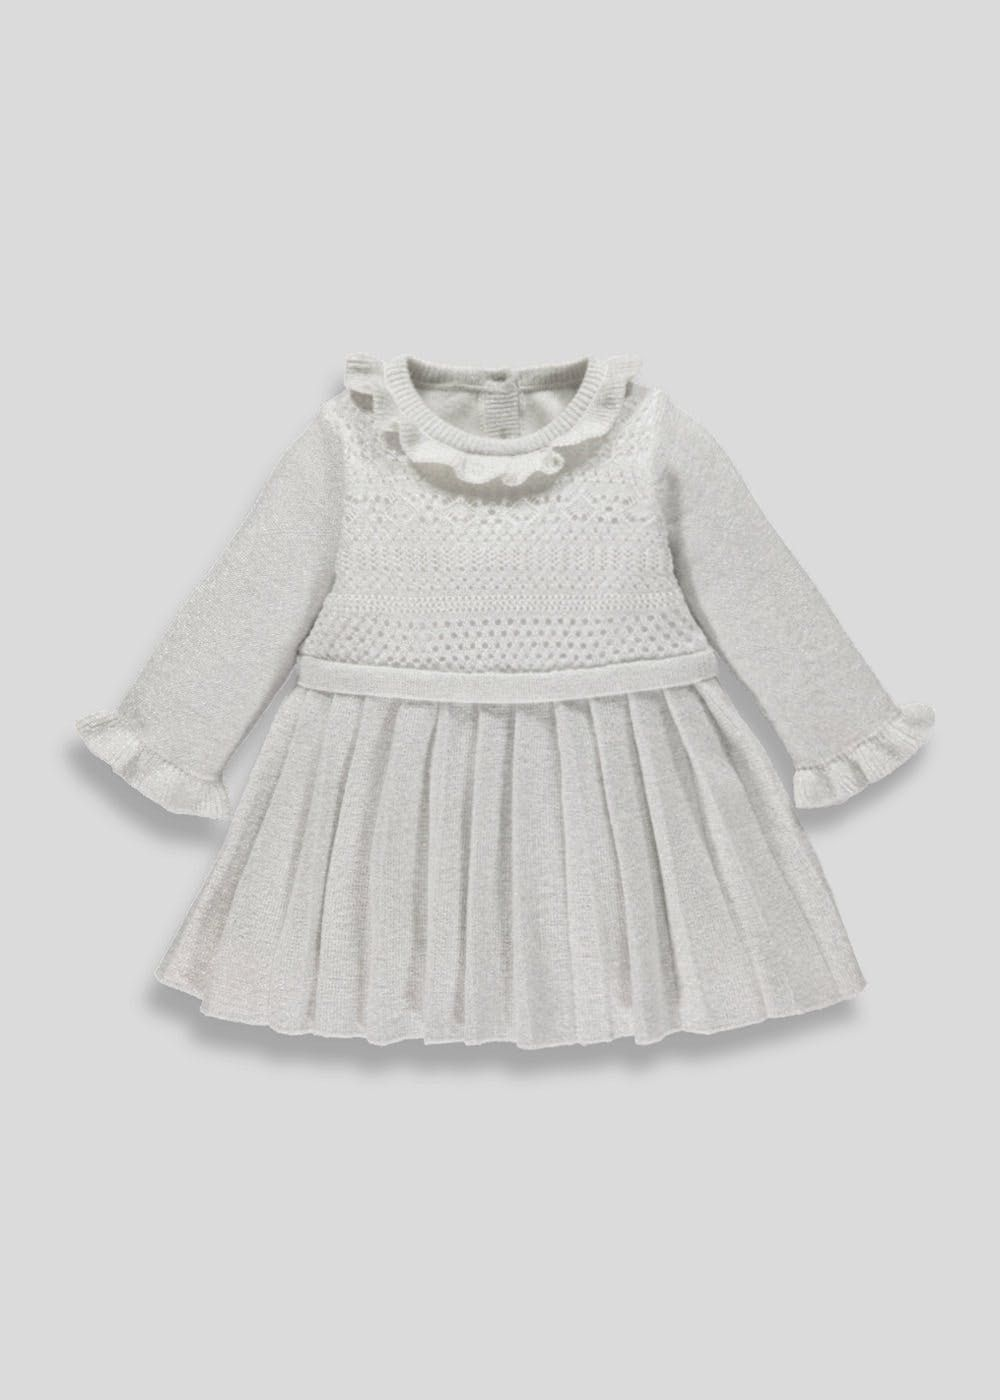 42dfc160b Pleated Knit Dress (Newborn-18mths)